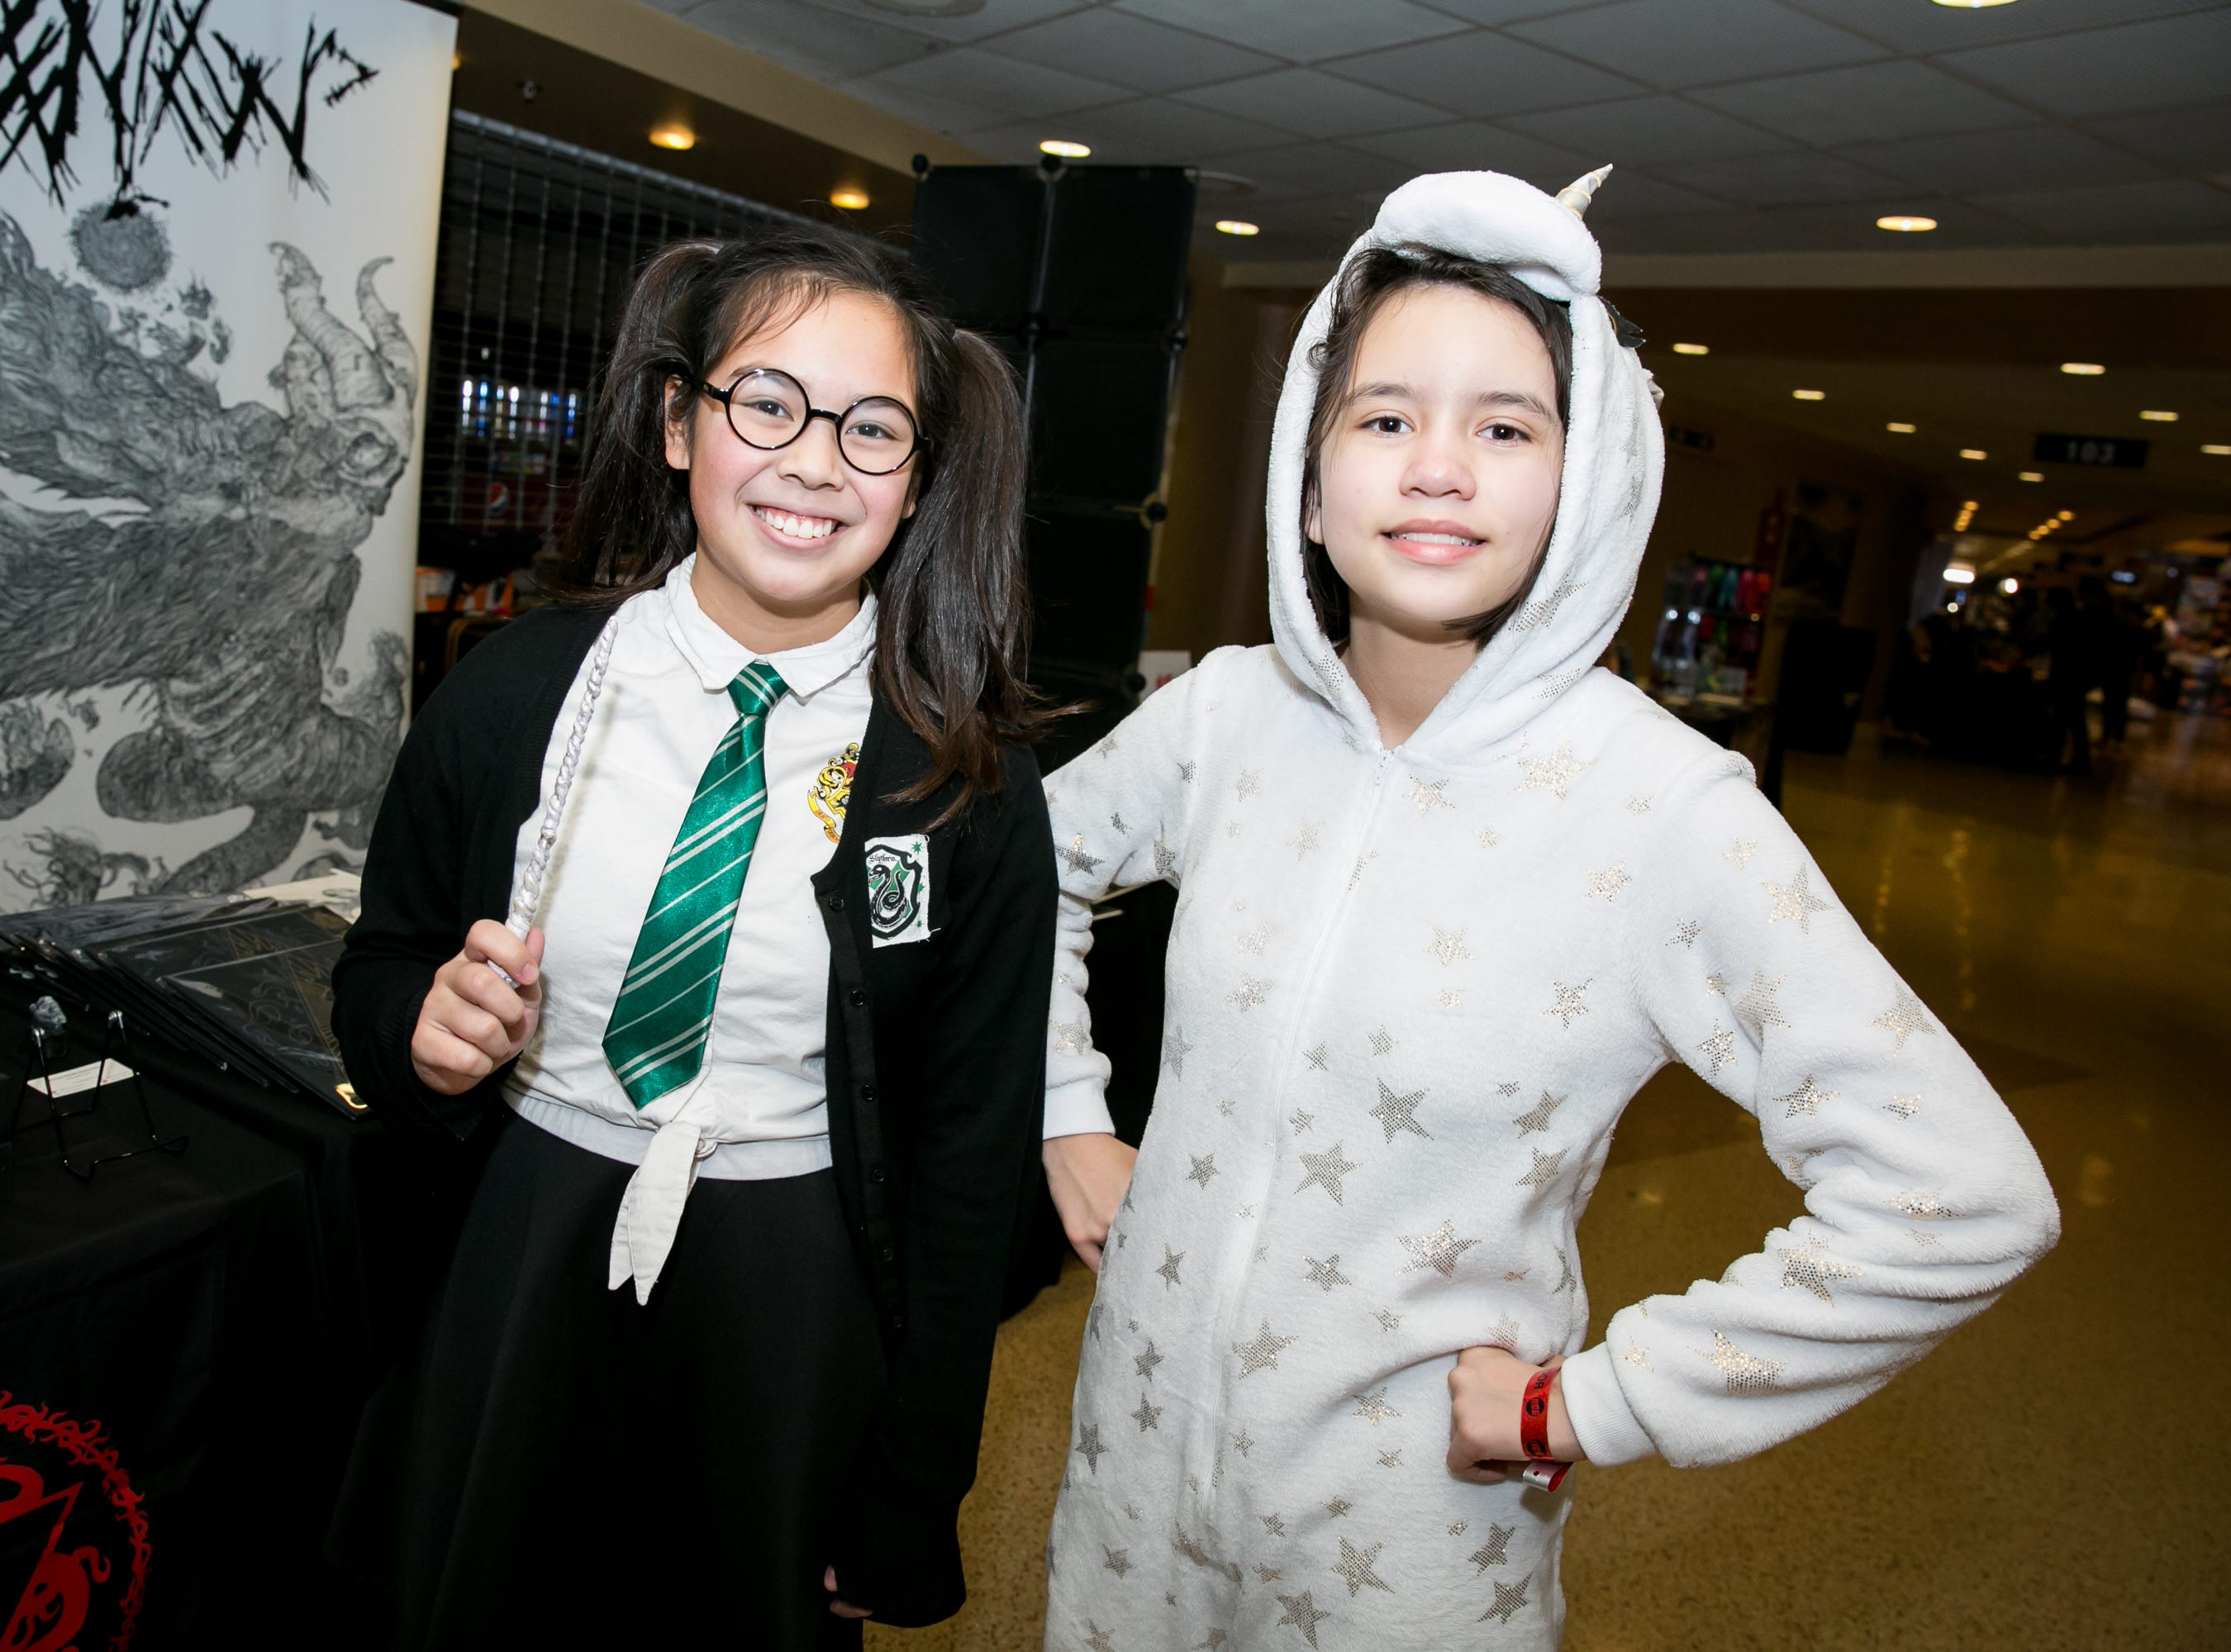 Witches and unicorns got along great during Ace Comic Con at Gila River Arena in Glendale on Sunday, Jan. 13, 2019.